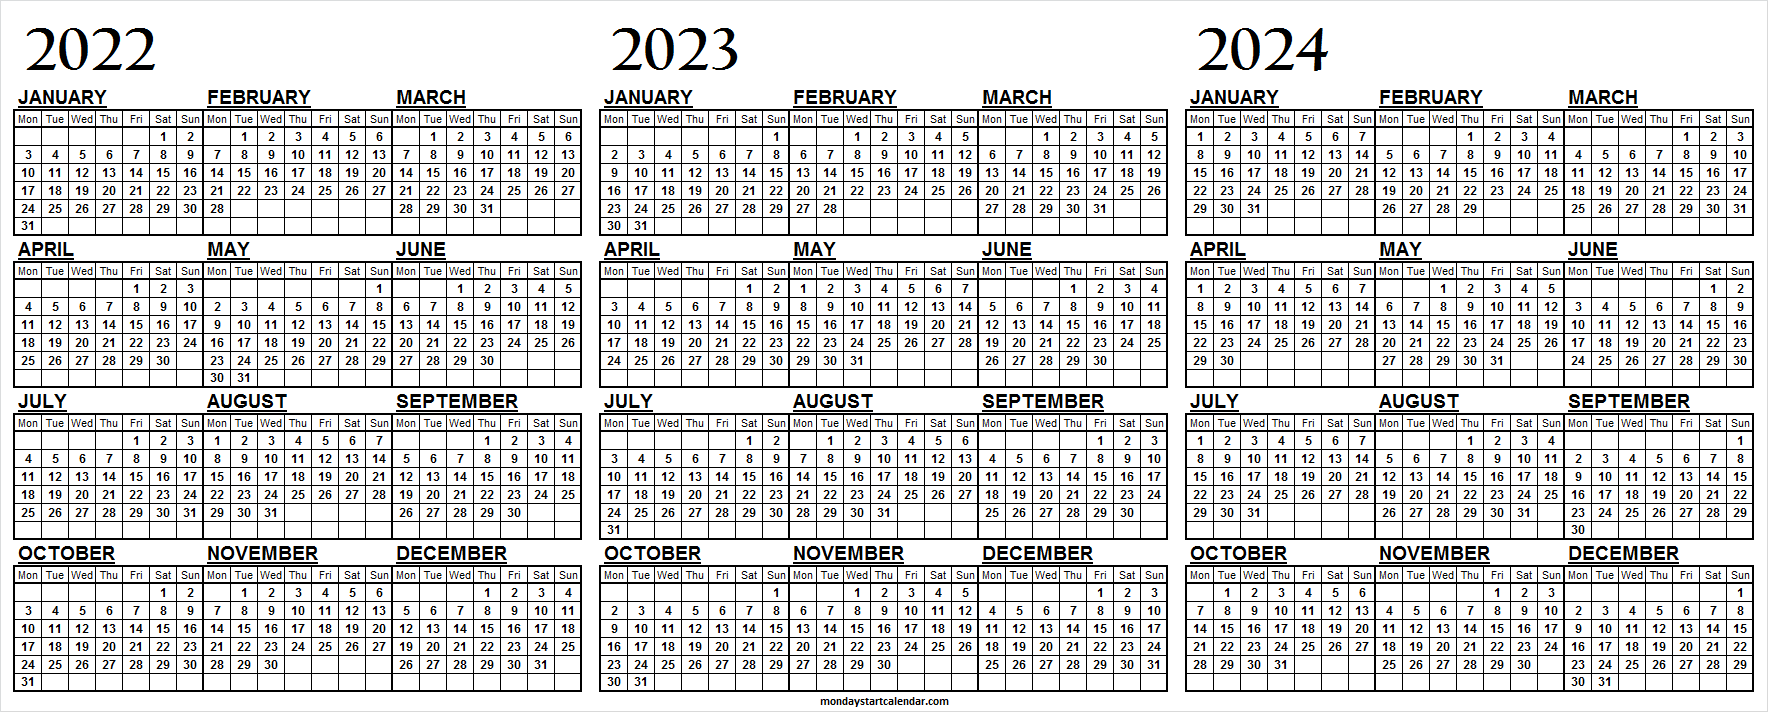 Free Printable 2022 2023 and 2024 Calendar on One Page